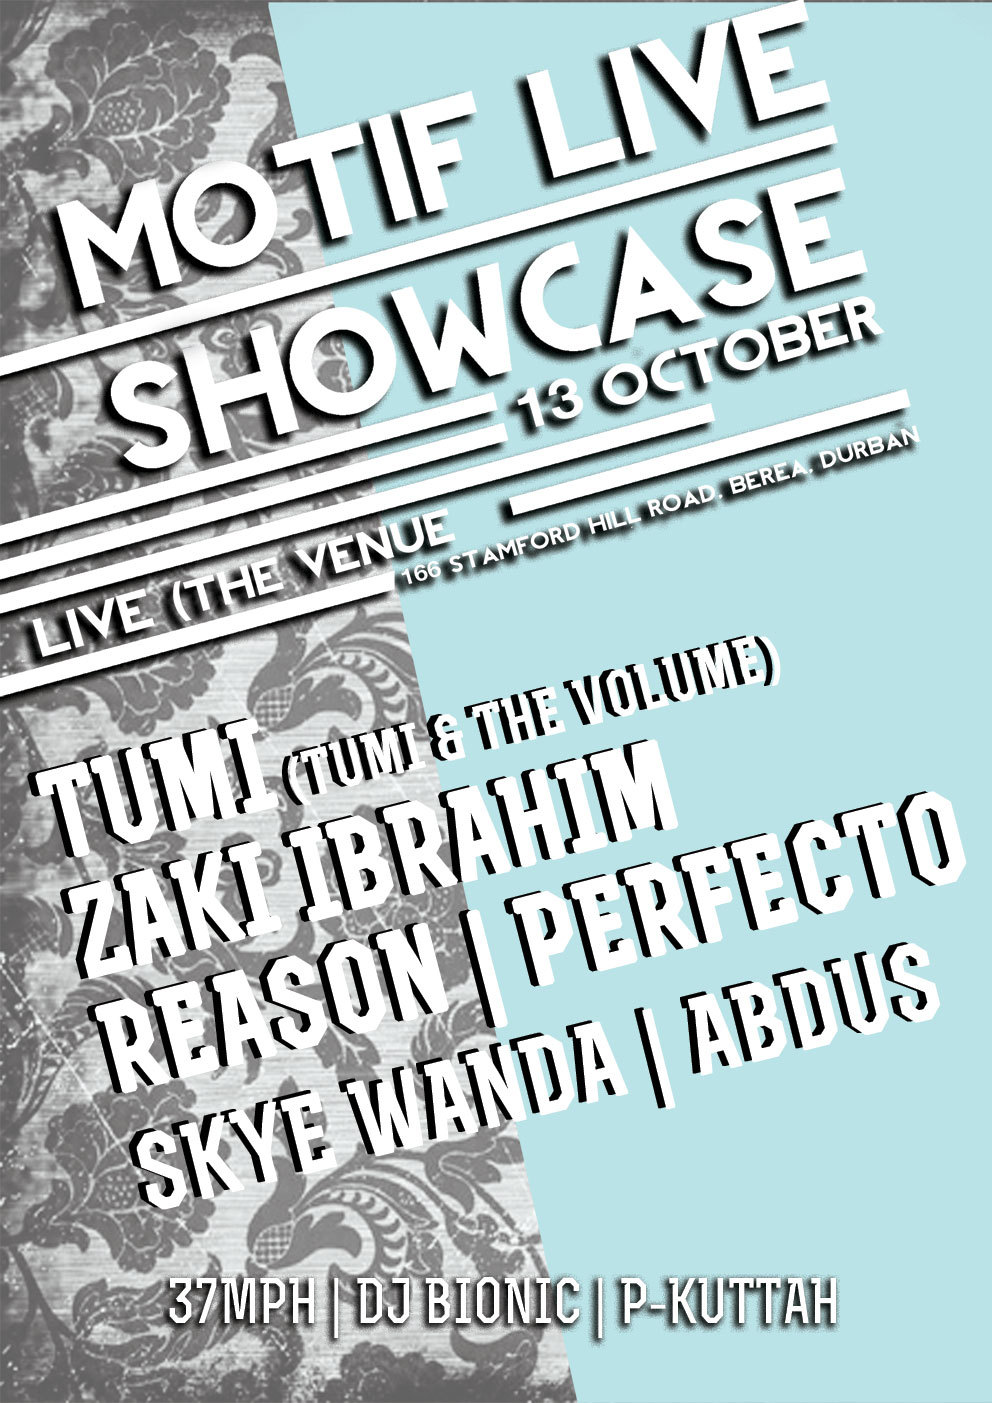 #MotifShowcaseDBN // Sat. 13 October 2012 // Live, The Venue